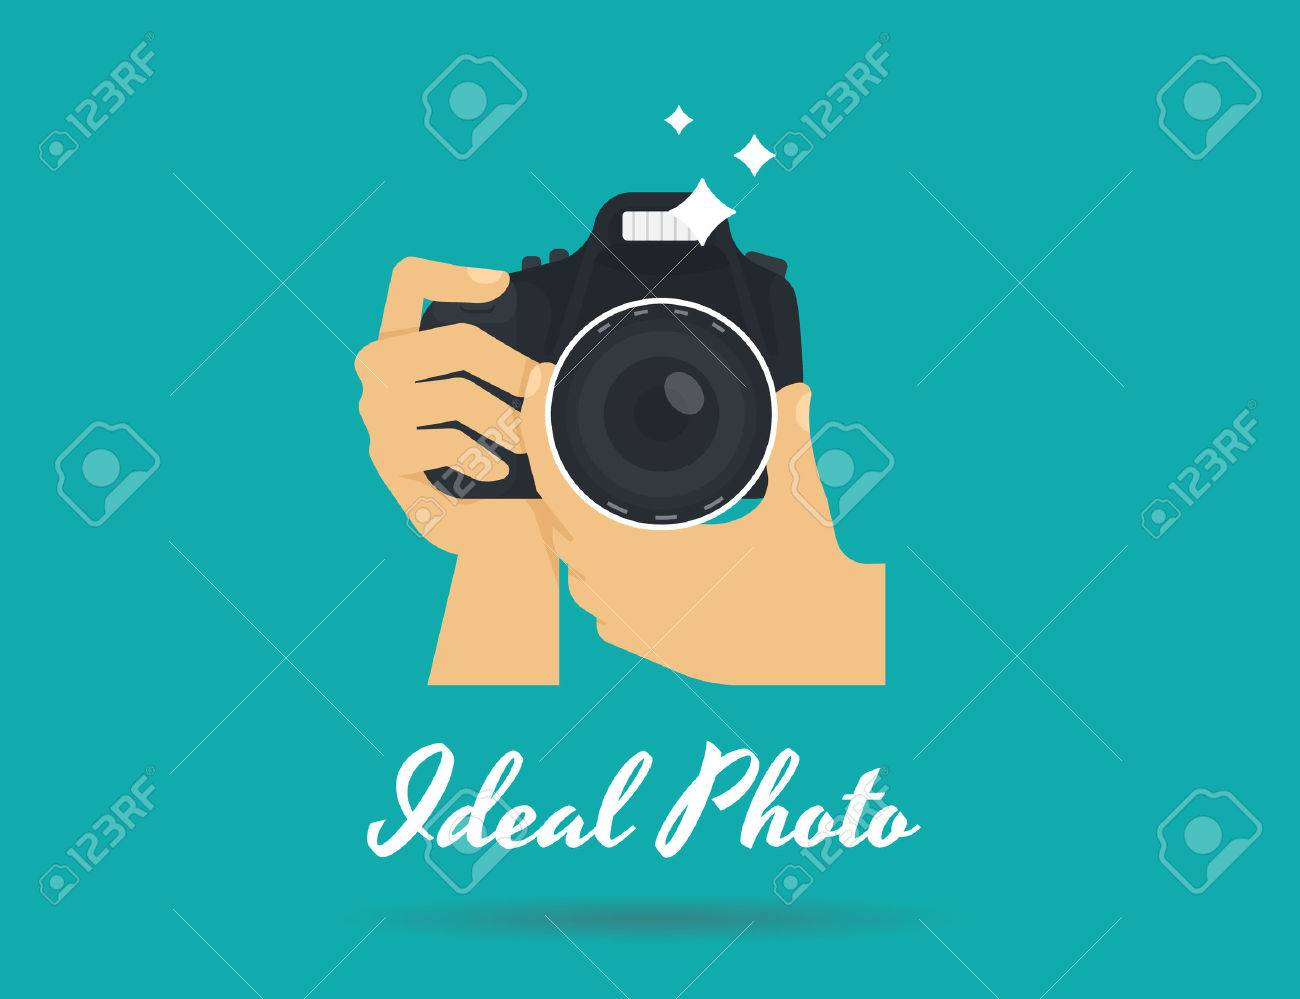 Photographer hands with camera icon or template. Flat illustration of lens camera shooting macro image with flash and text ideal photo - 51520468